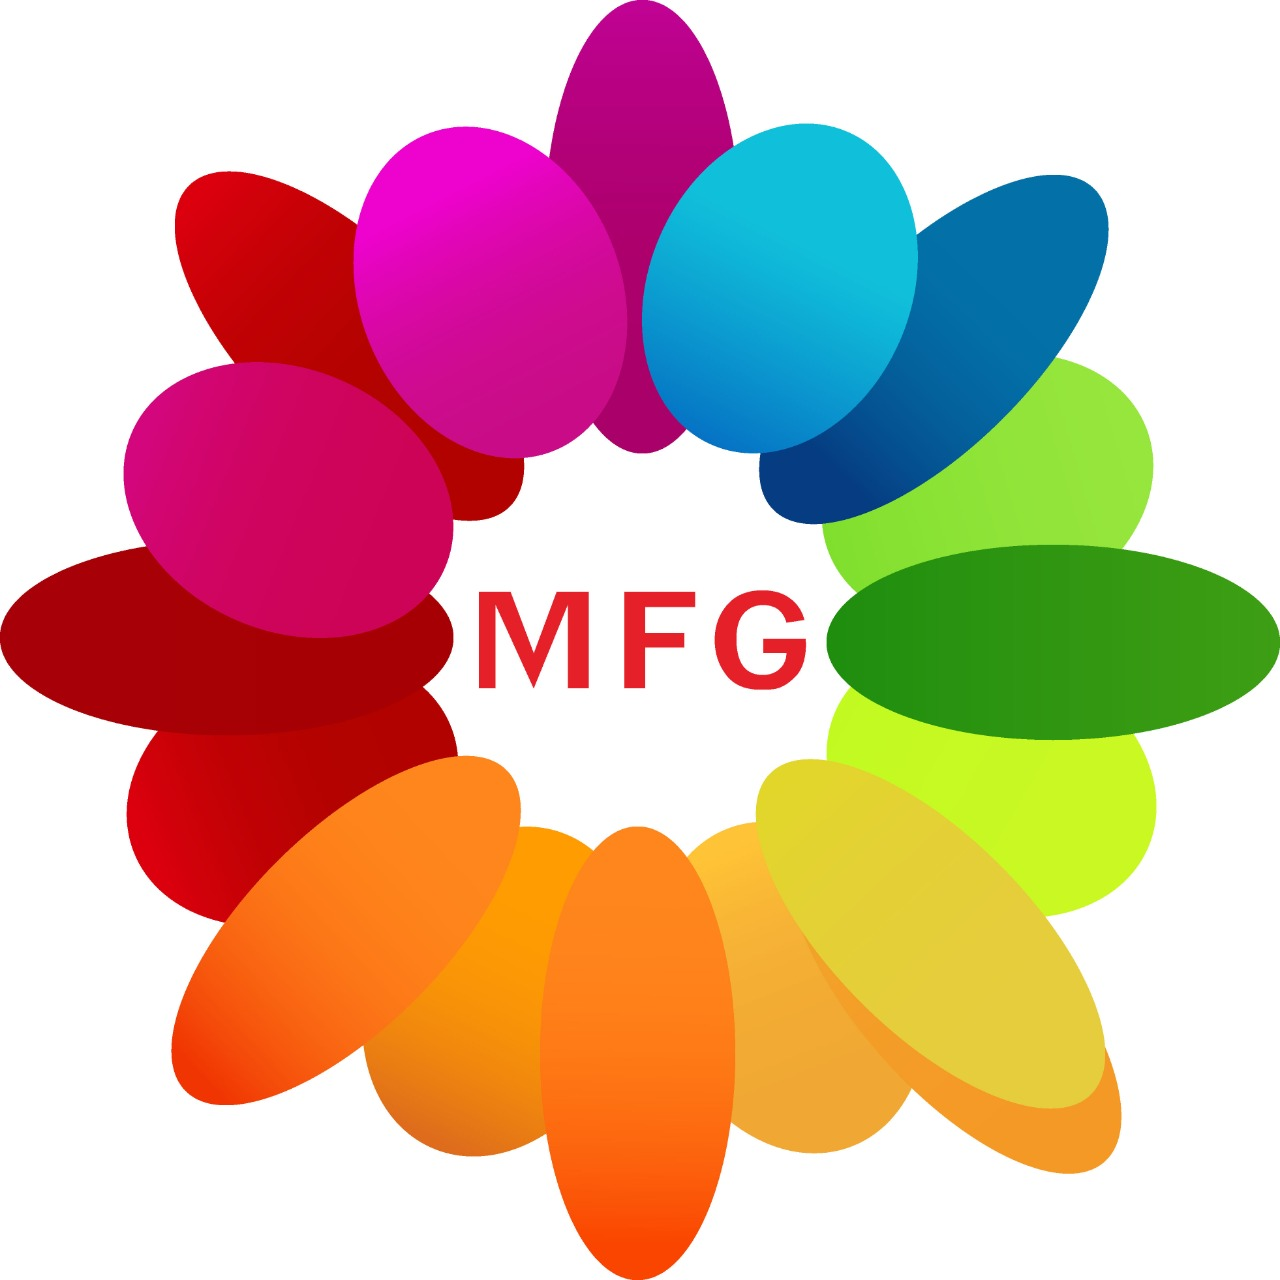 Celebrate With a Beautiful mixture of 15 lavender and blue orchids arranged in a glass vase looking rich and beautiful